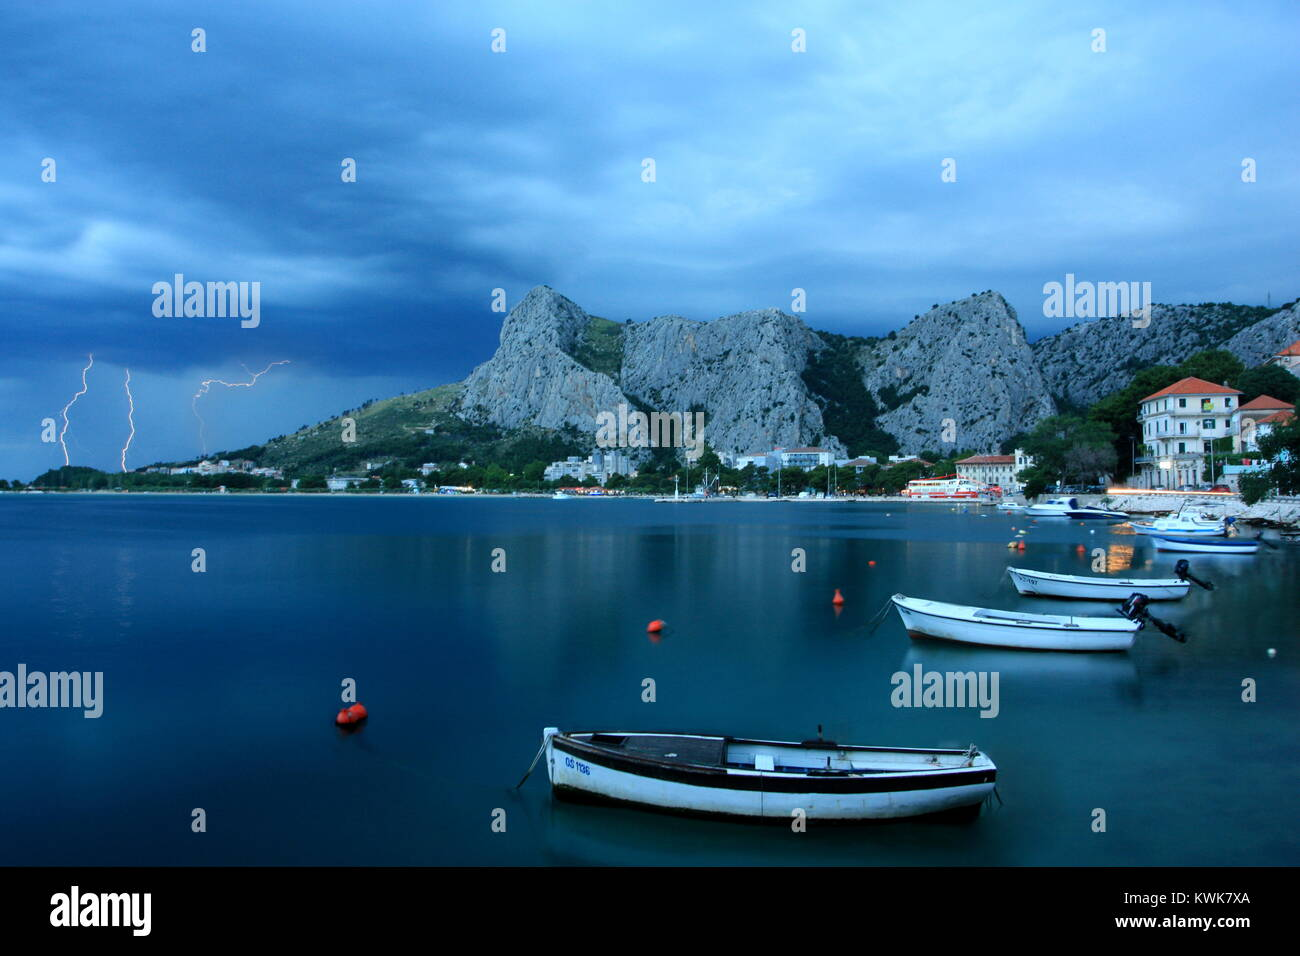 A storm over the dalmatian coast, viewed from the town of Omis - Stock Image